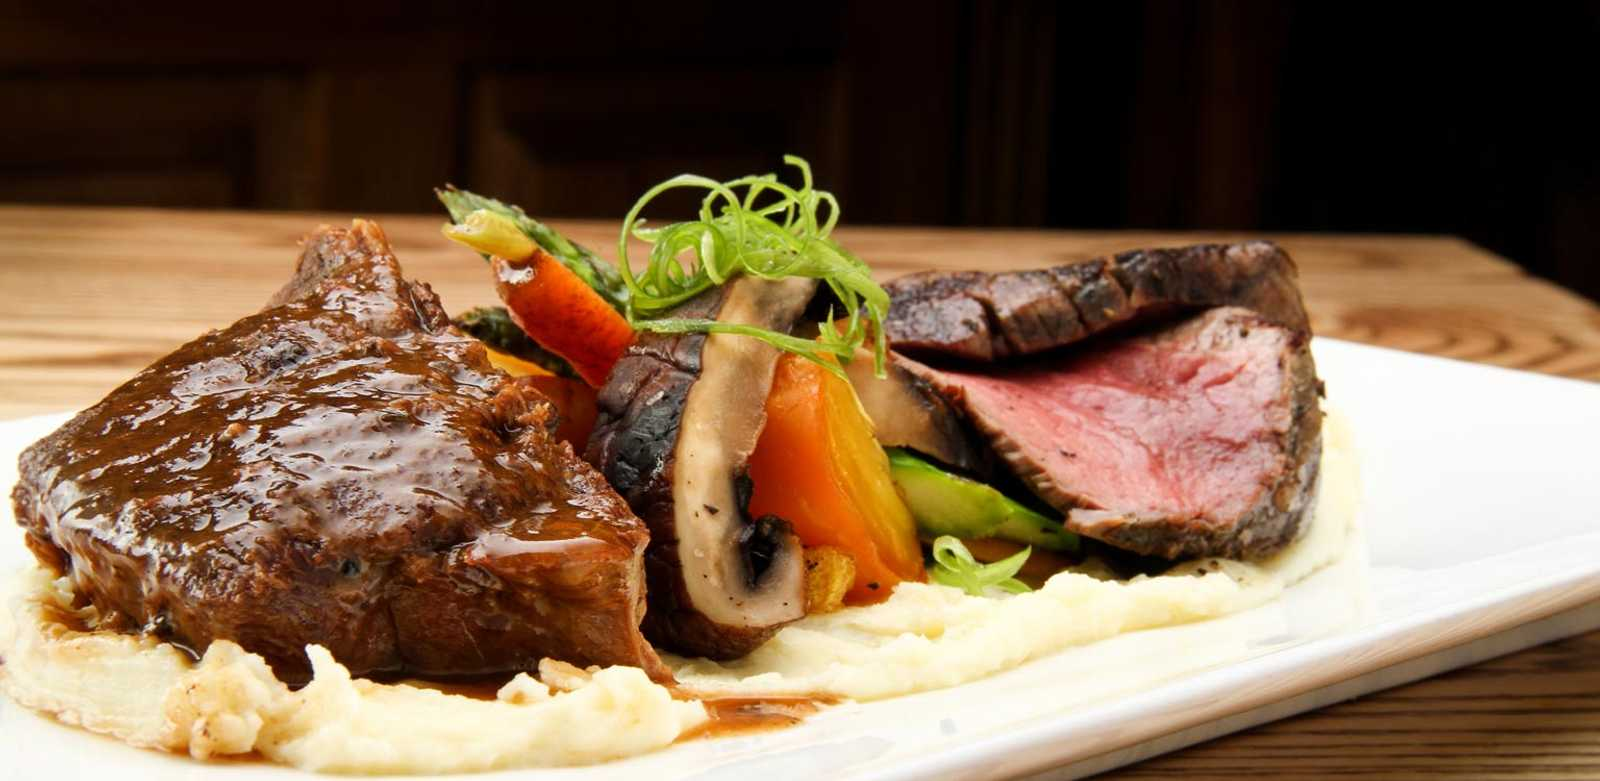 Delicious dinner at Birchwood Restaurant in Panorama, BC